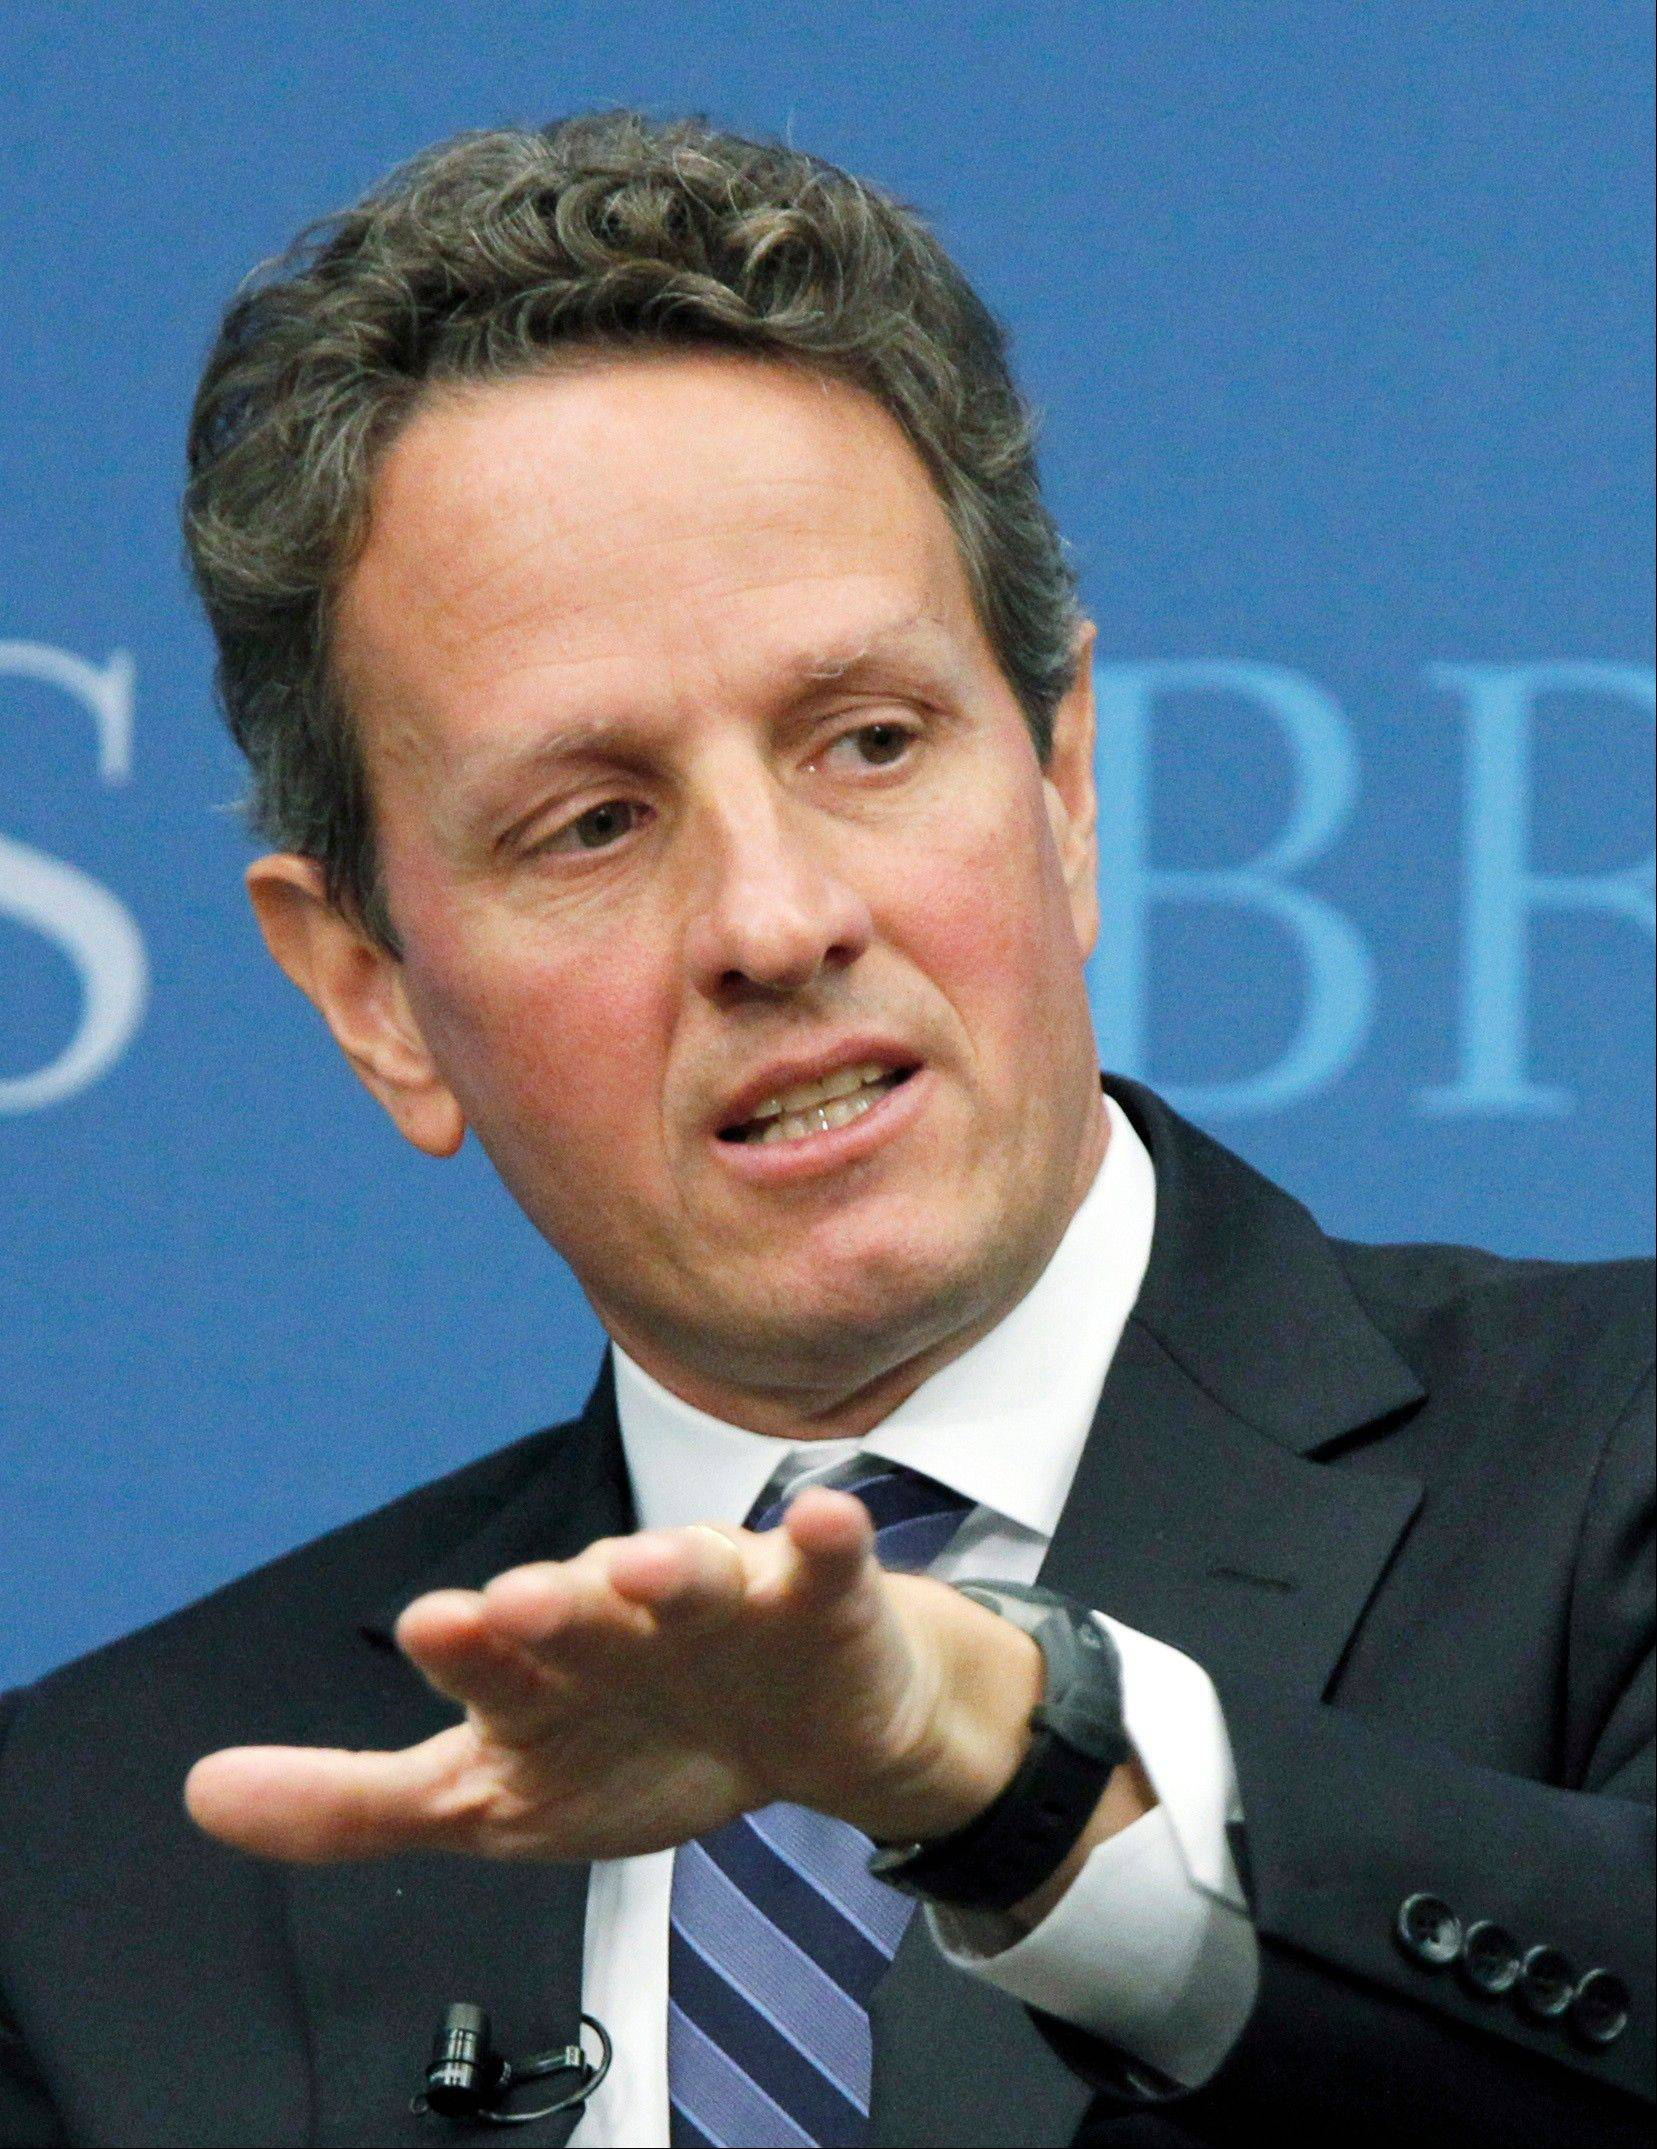 Timothy Geithner has told President Barack Obama he will remain on the job as Treasury secretary.